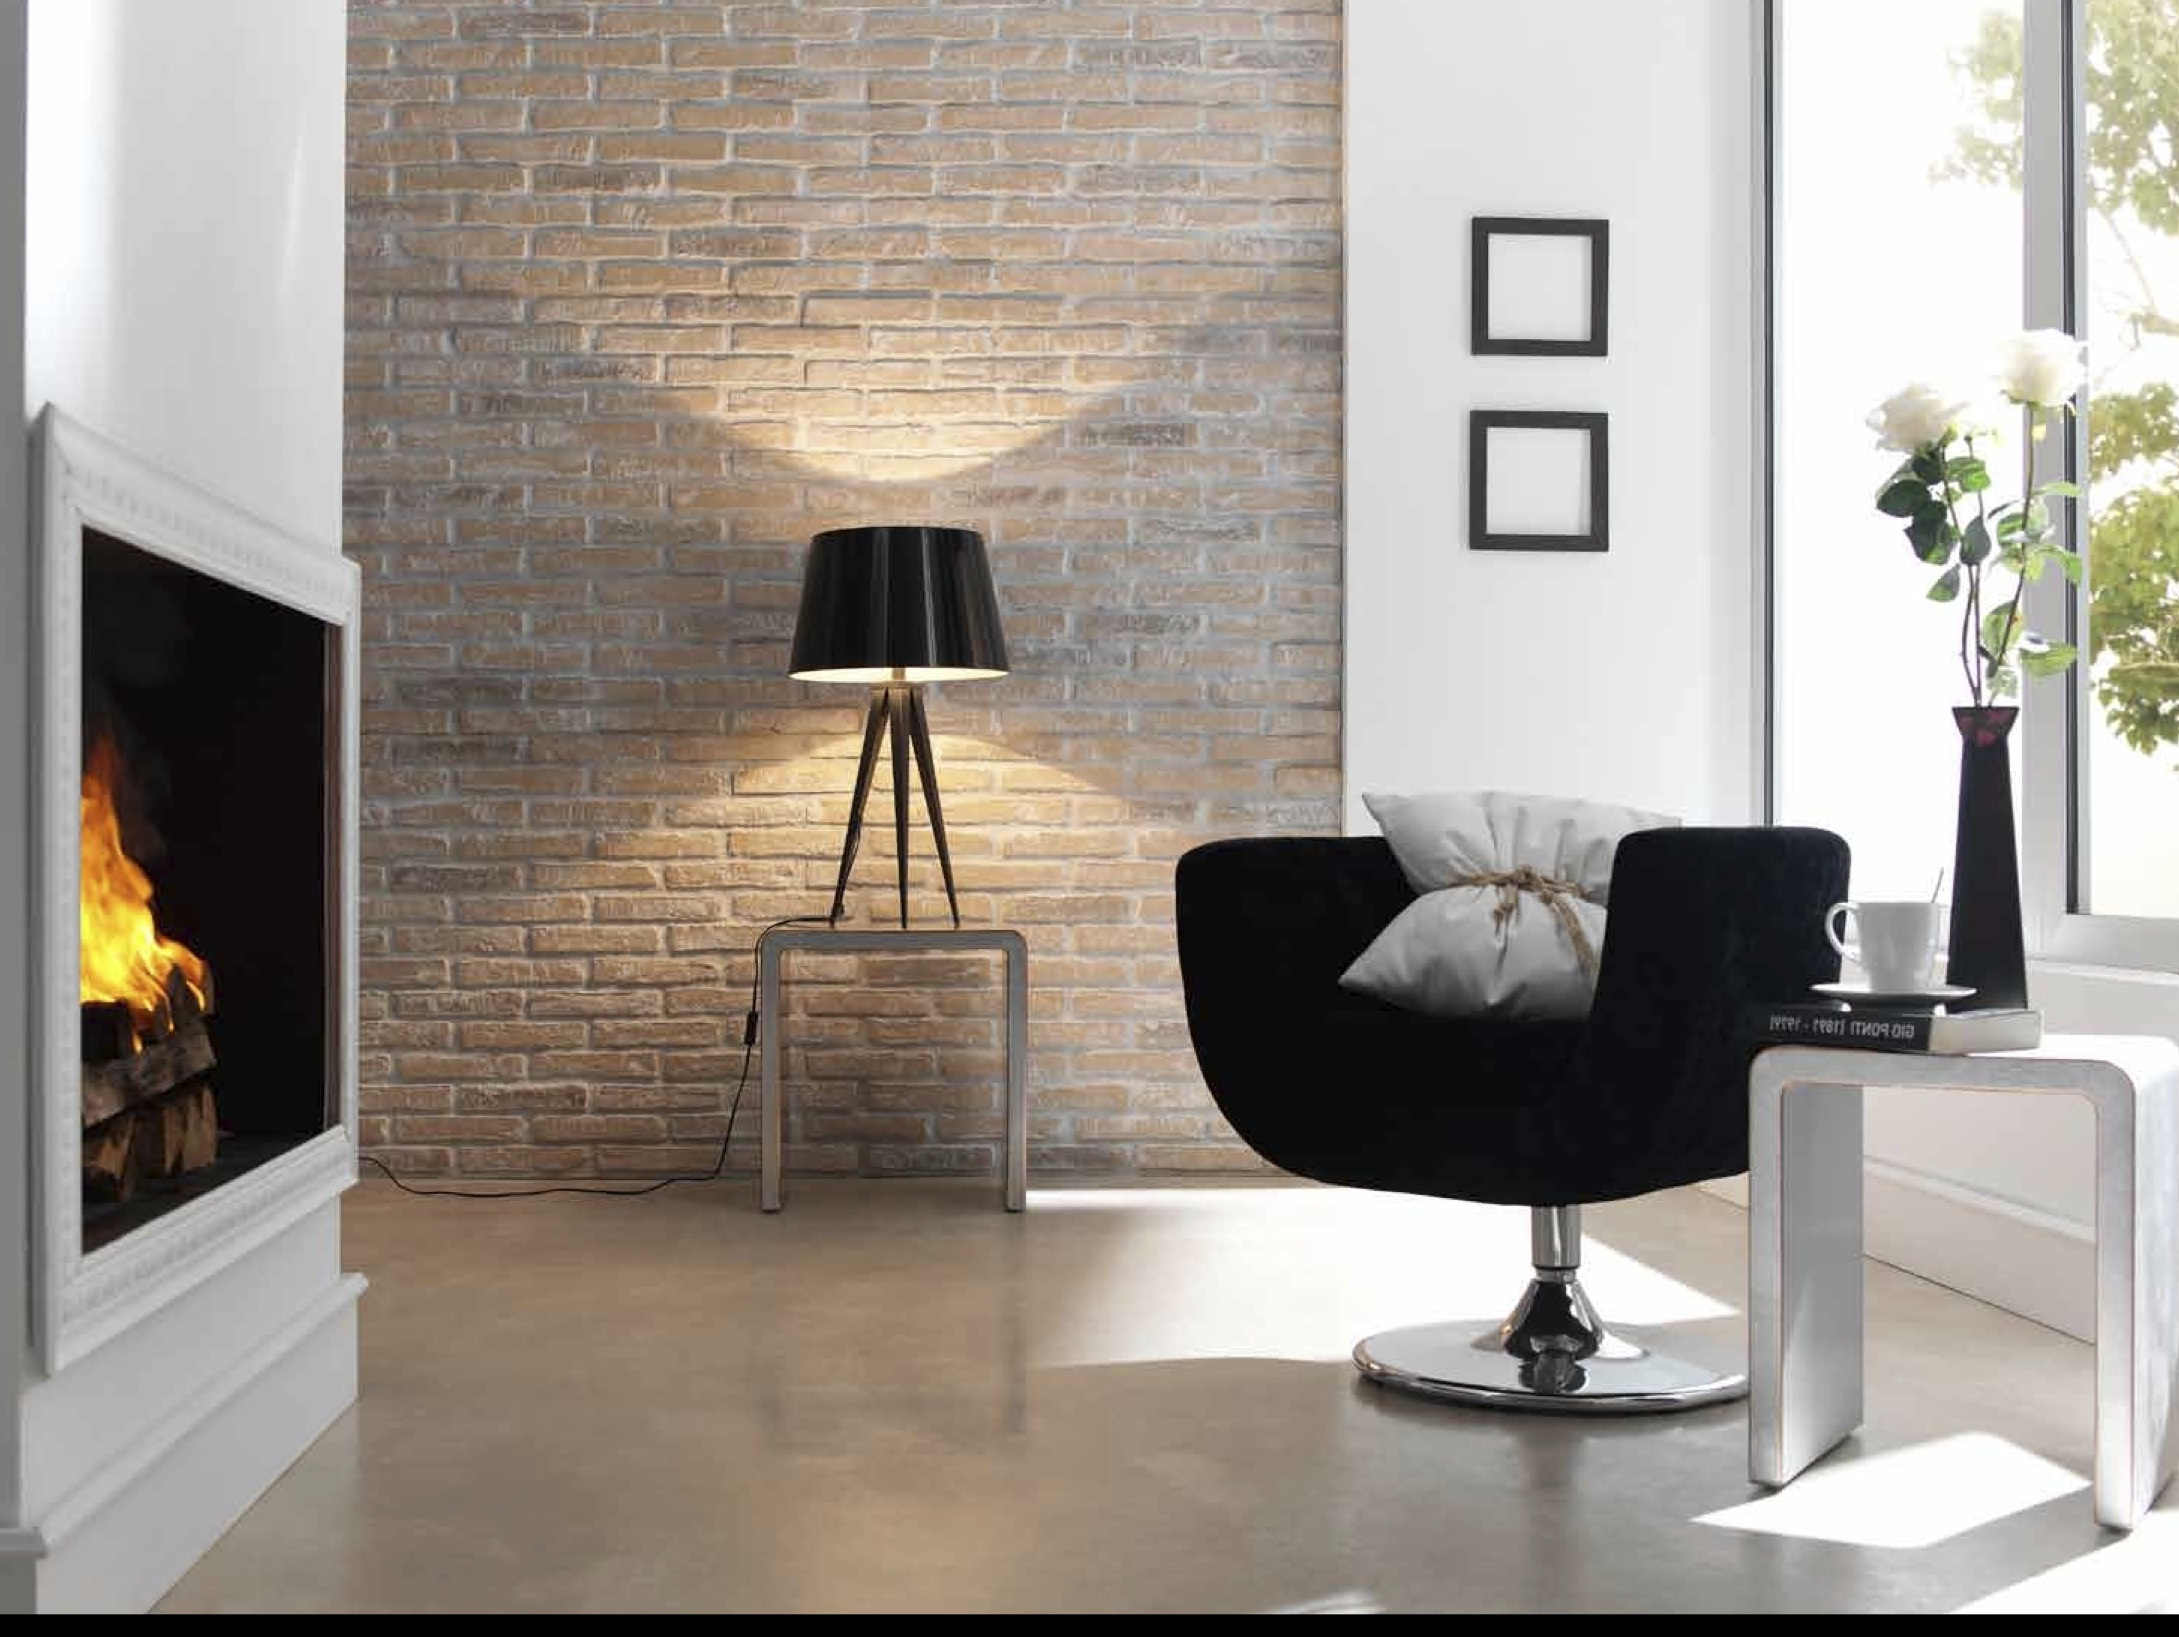 Interior Brick Wall Tiles Be Inspired Industrial Glamour Exposed Brick Panels